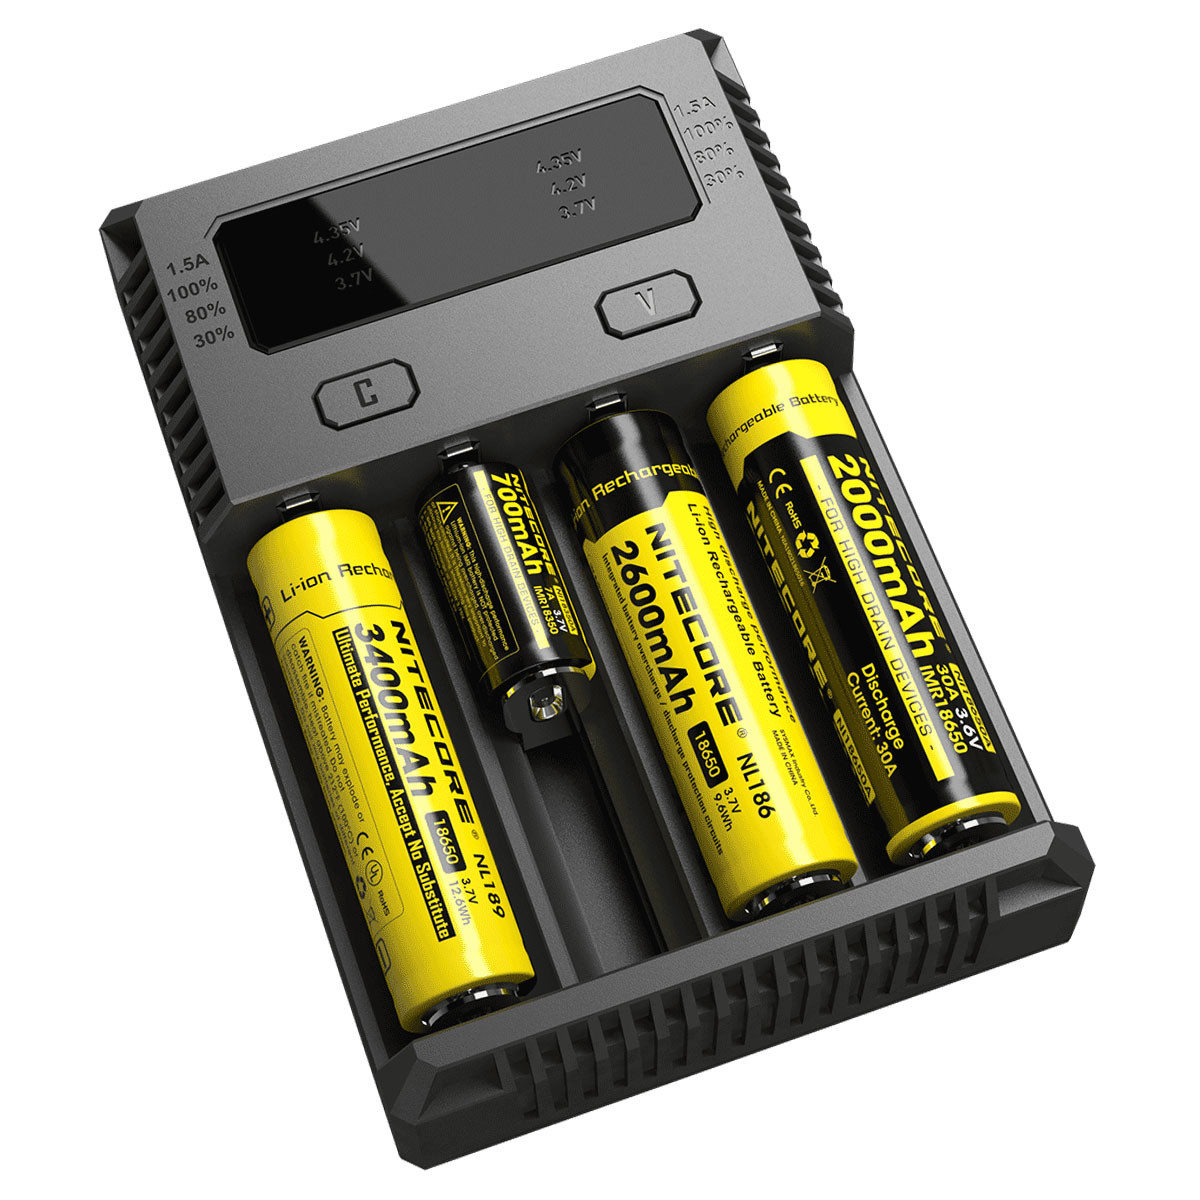 Зарядное устройство NITECORE Digicharger I4 для Li-ion/LiFePO4/Ni-MH (I4)